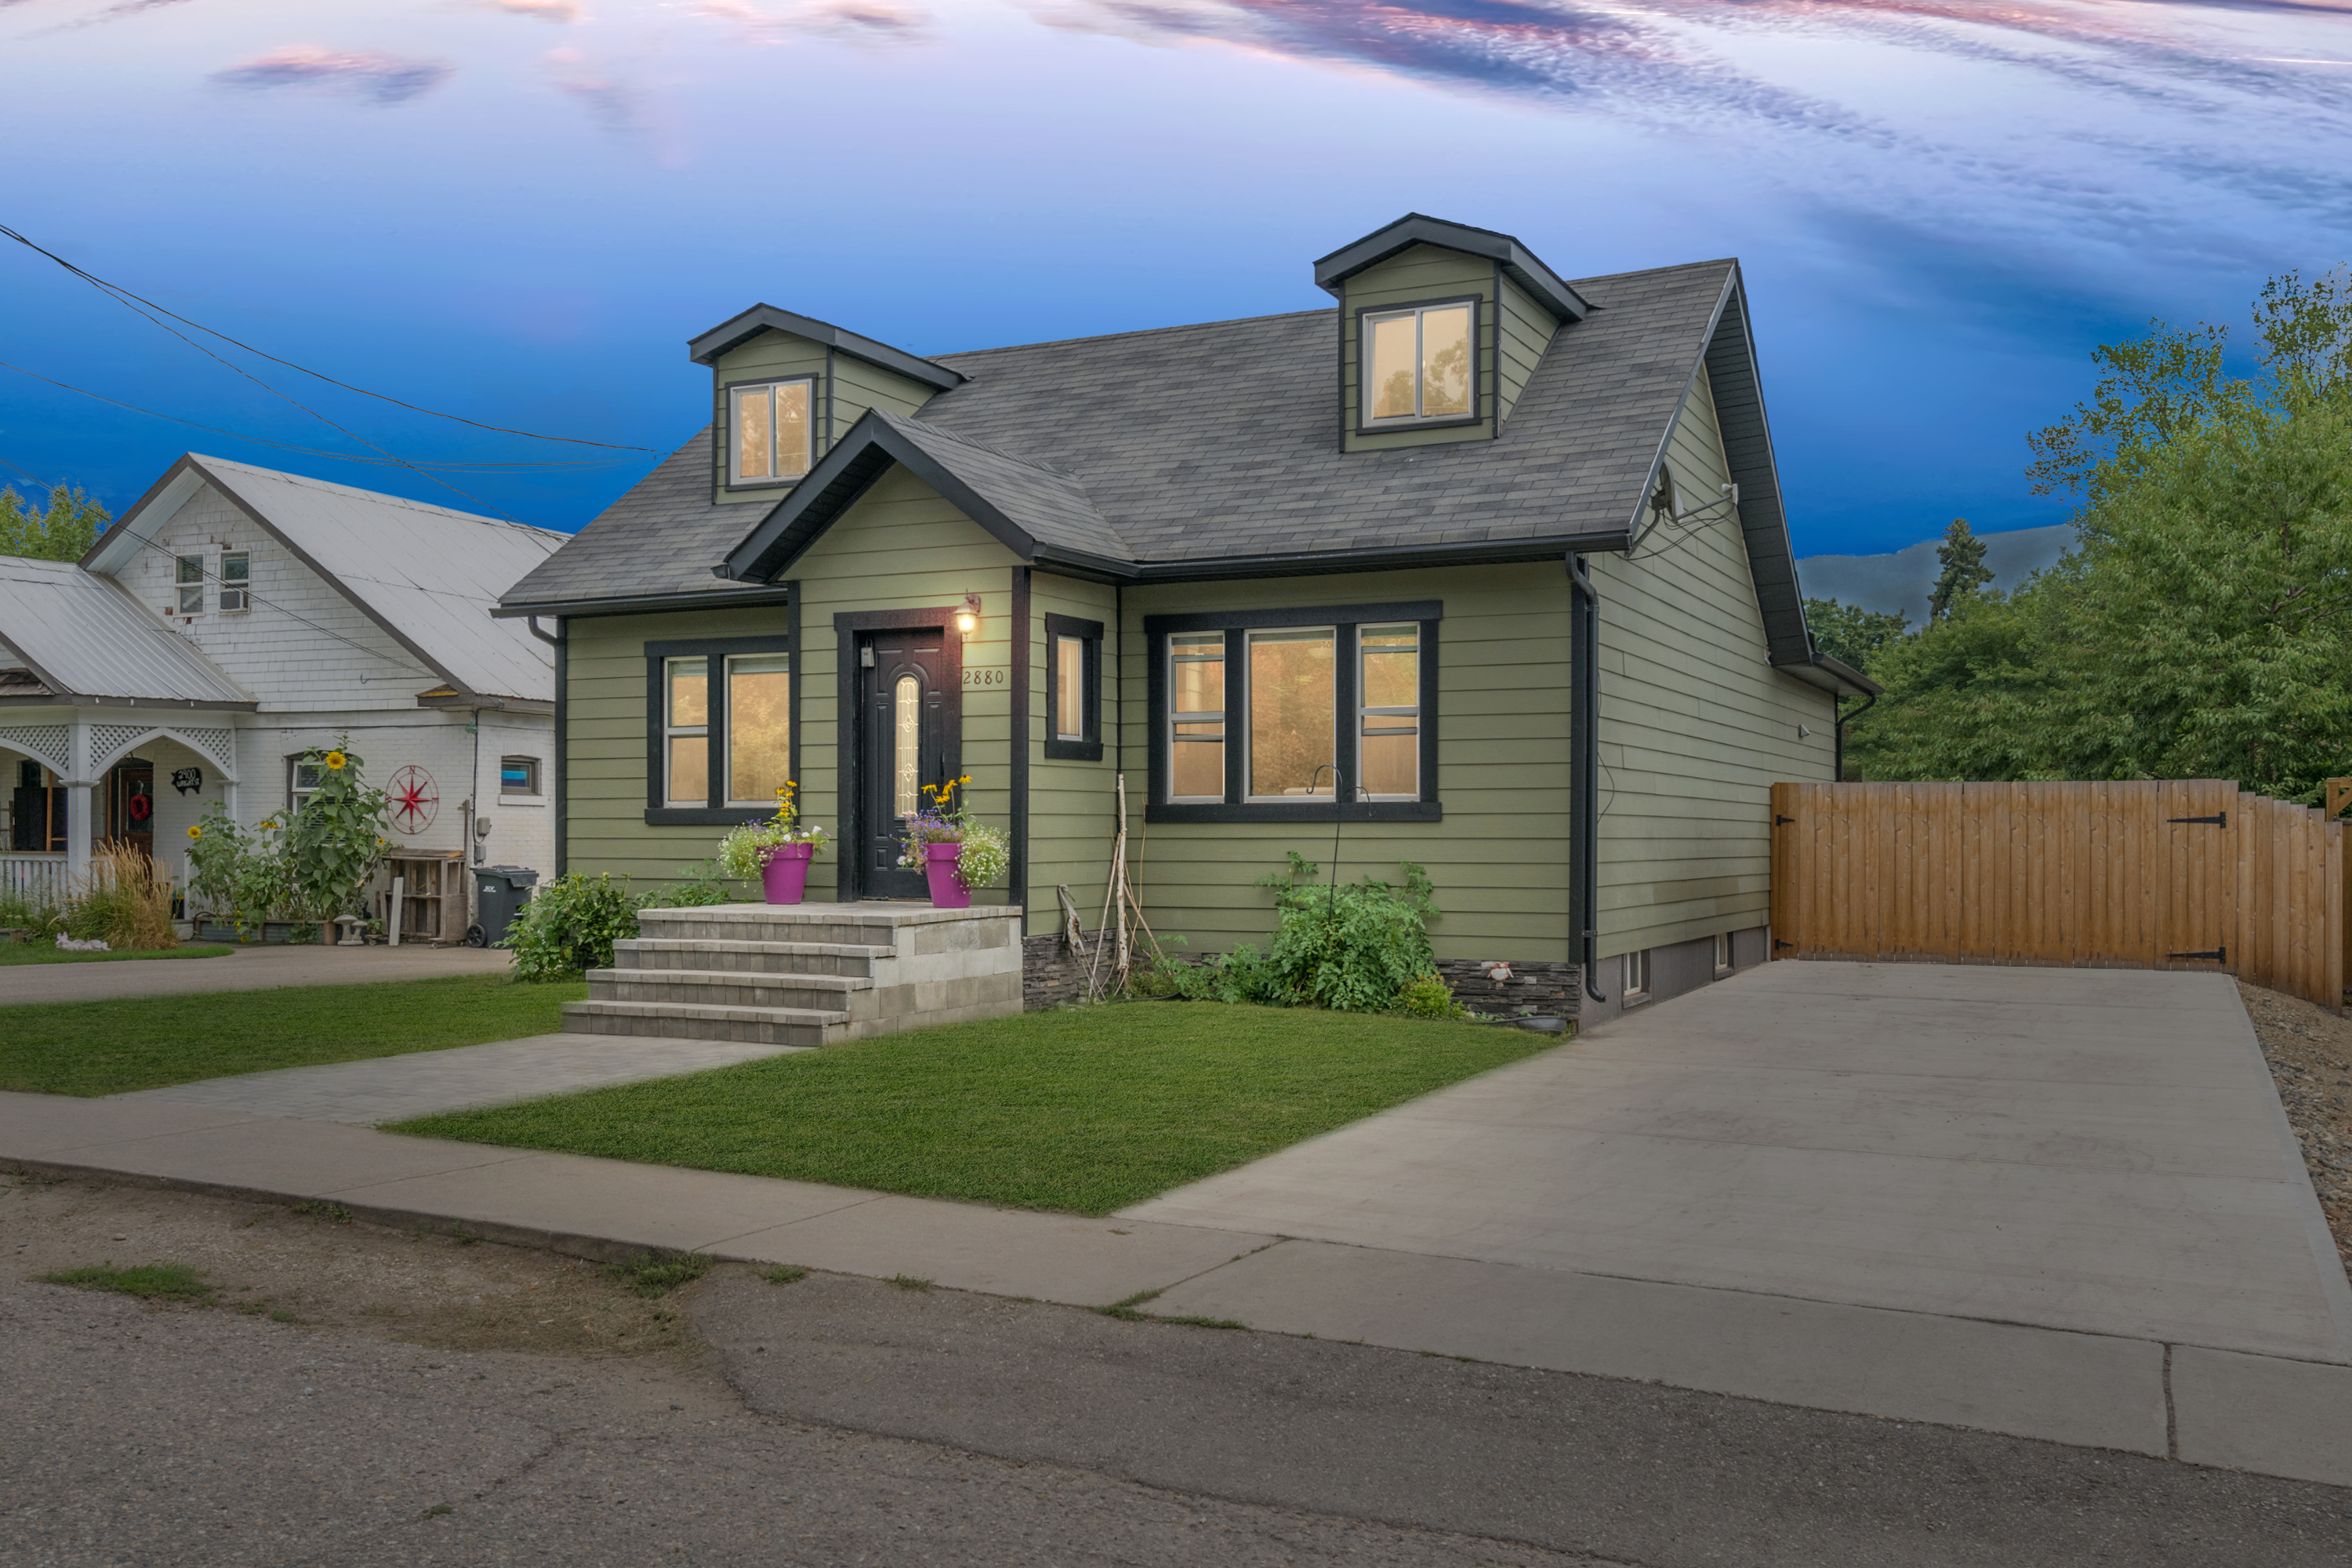 2880 Wright St. Armstrong, BC| $589,000